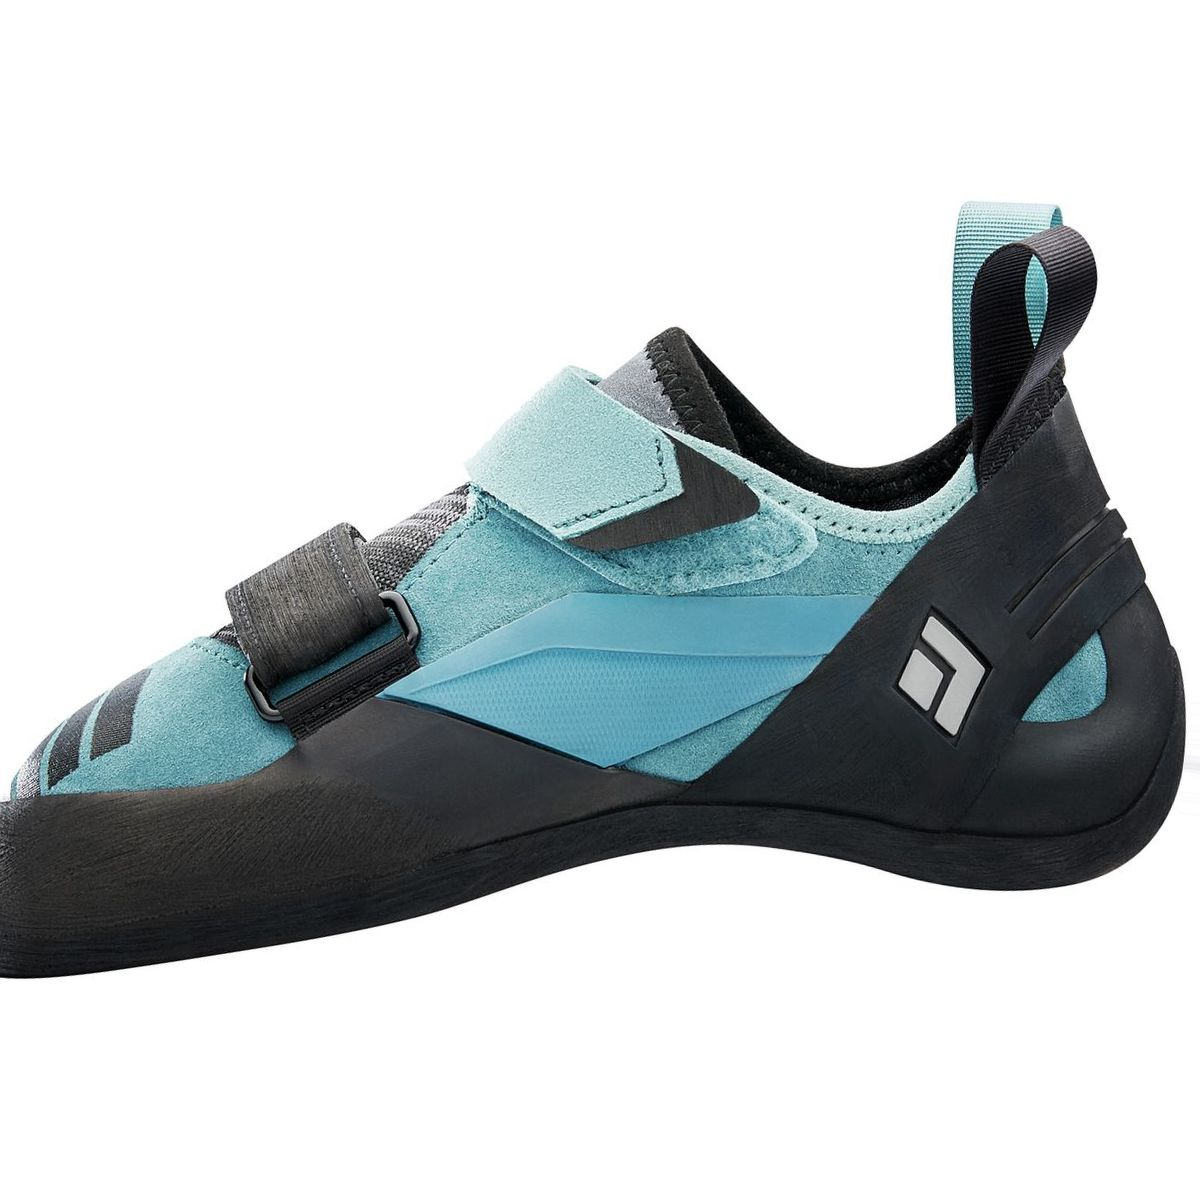 Black Diamond Focus Climbing Shoe - Women's